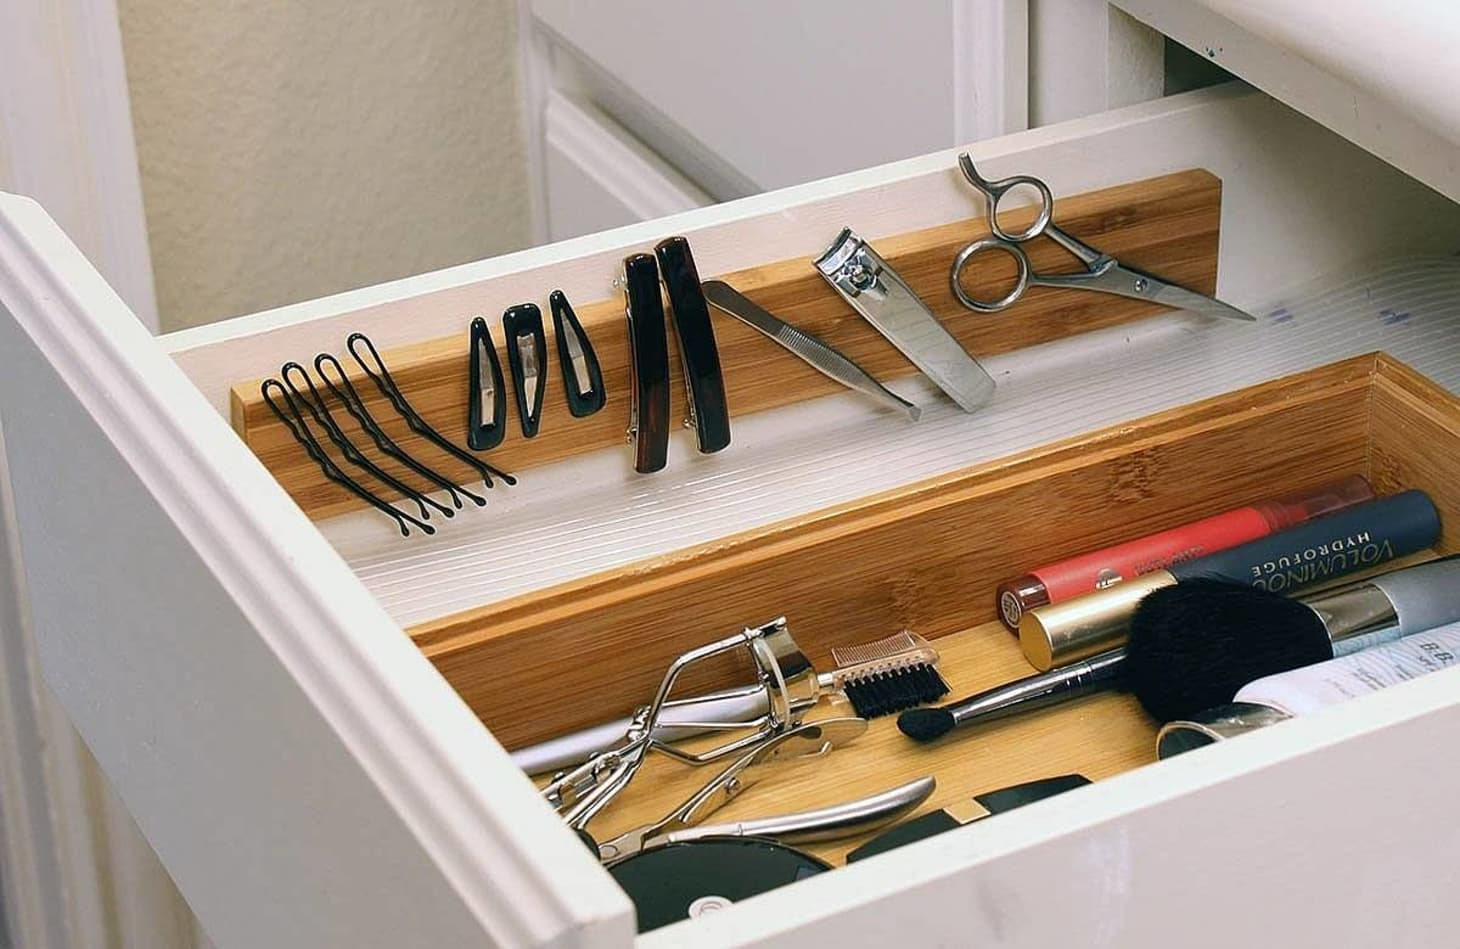 7 Ways to Organize a Bathroom Without a Medicine Cabinet or